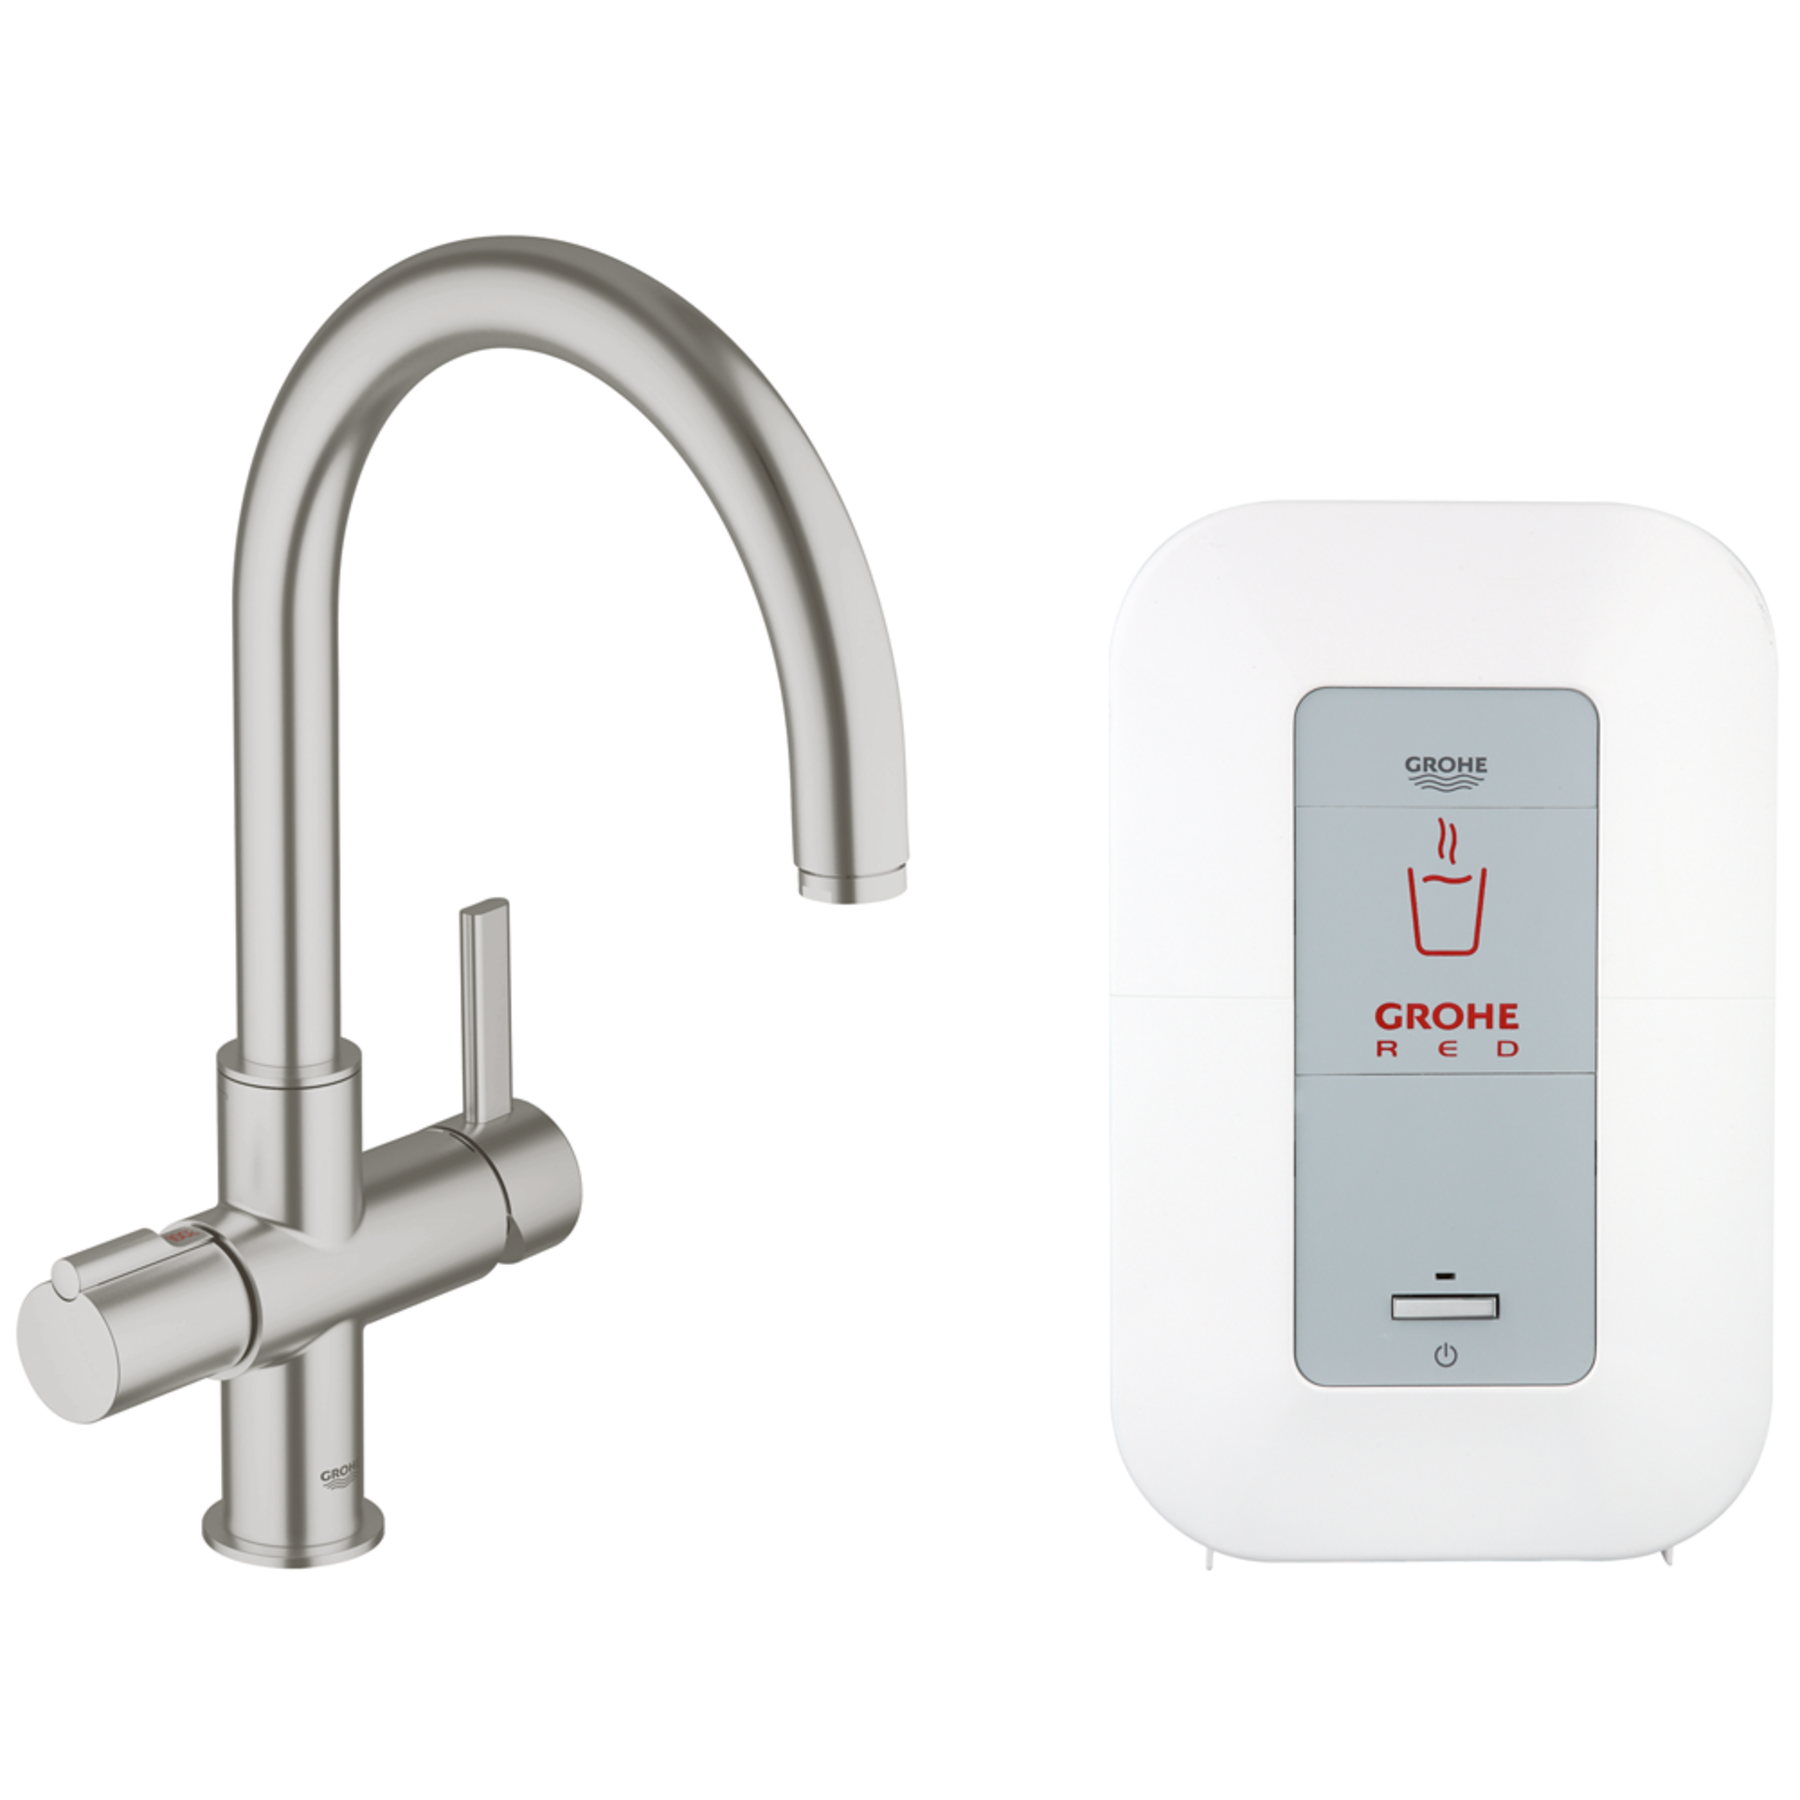 Grohe Red keukenkraan duo inclusief single boiler 4 liter 2100W RVS